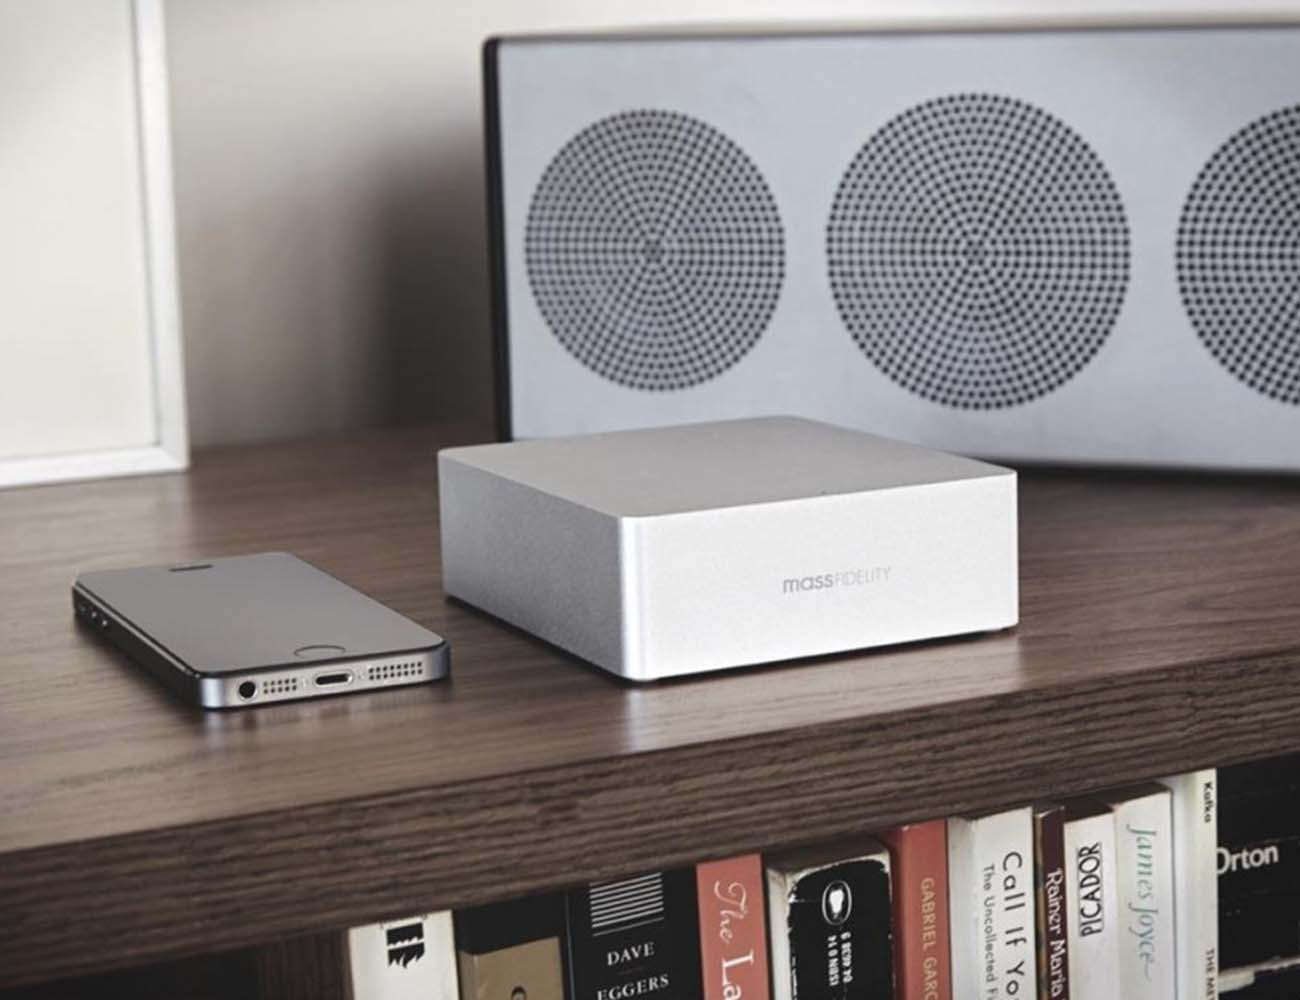 Relay+Hi-Fi+Bluetooth+DAC+From+Mass+Fidelity